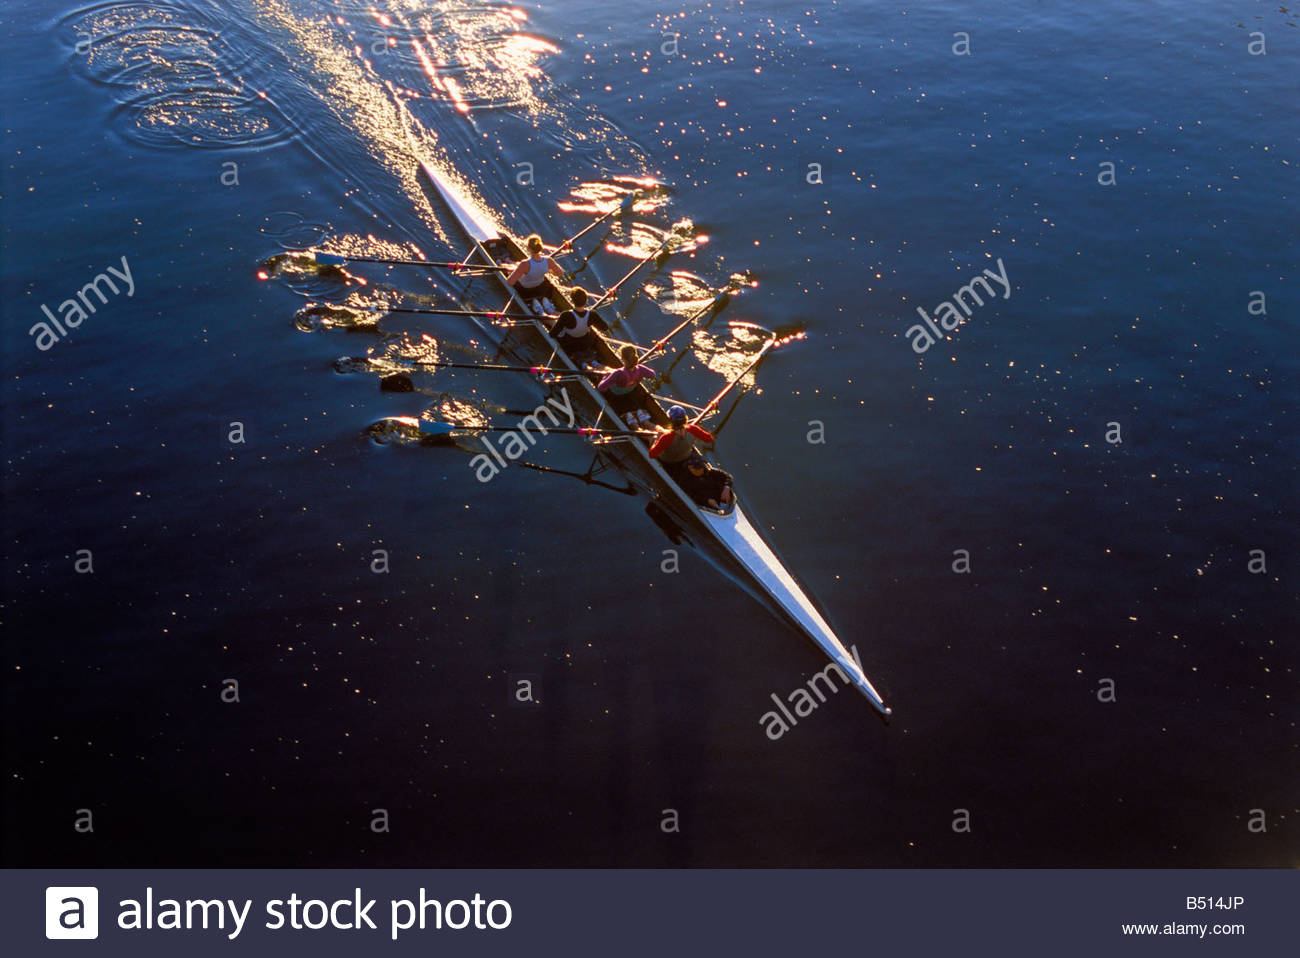 women in a coxed quadruple scull rowing boat on the Yarra River in Melbourne - Stock Image